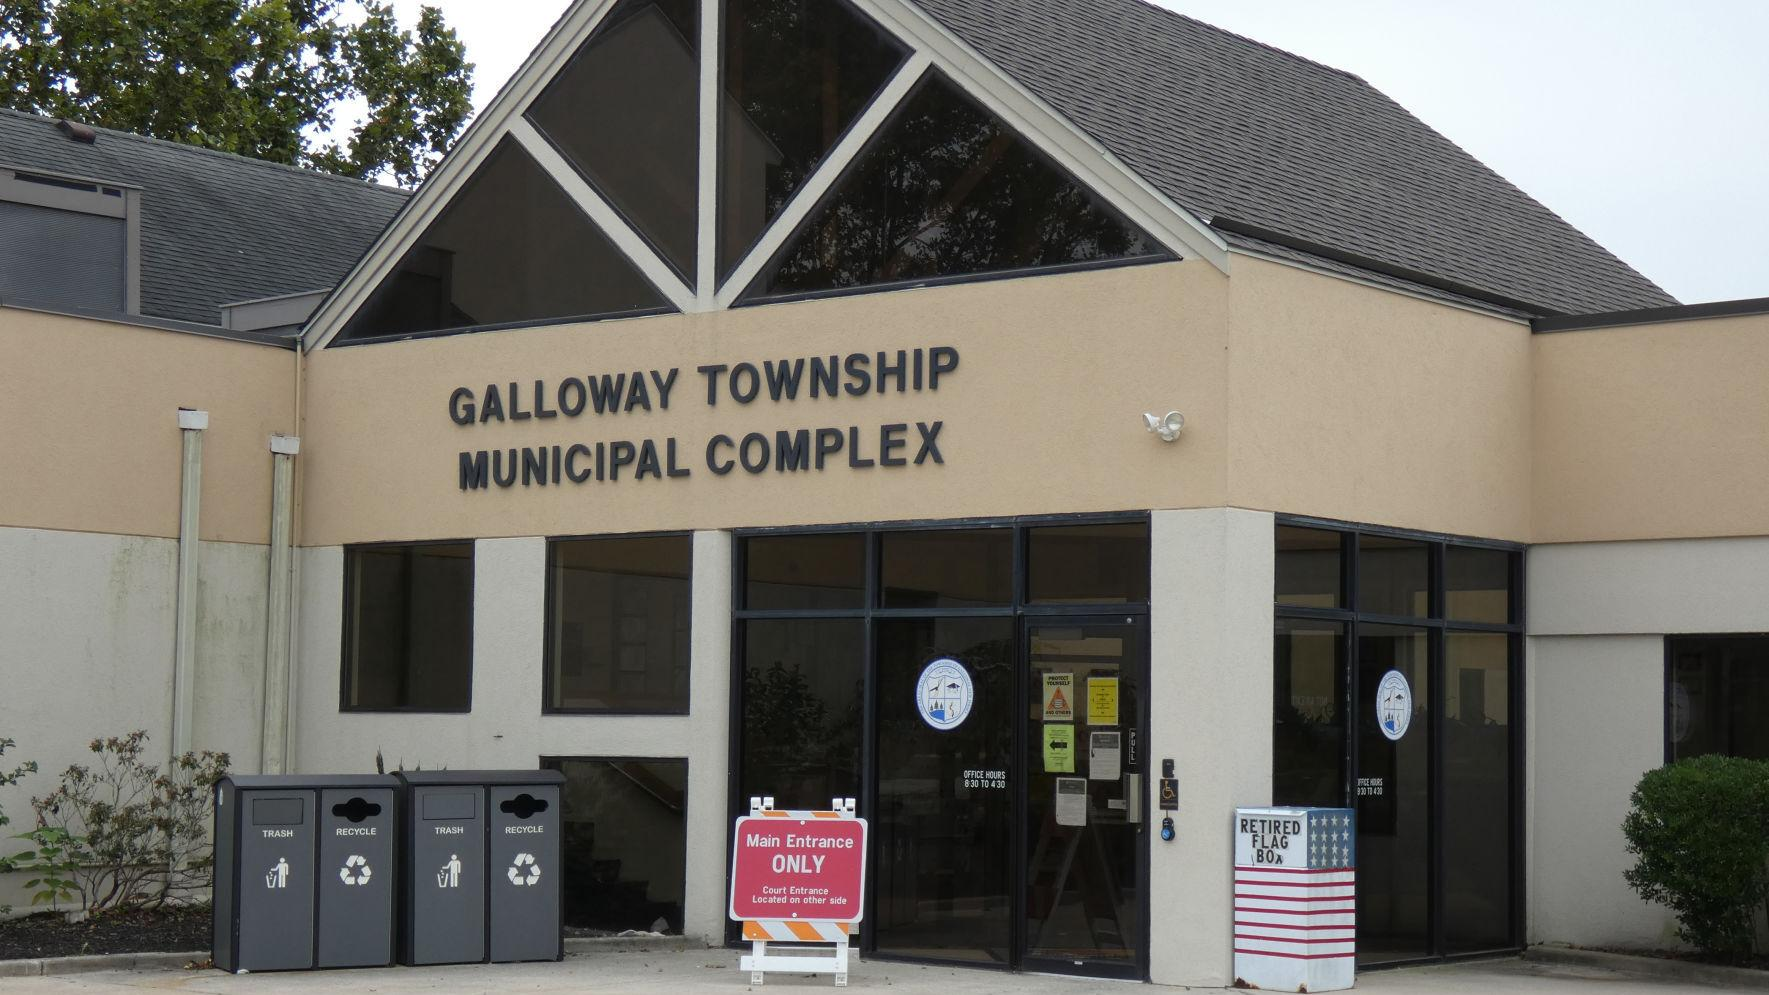 Housing, shopping, train stop part of Galloway Route 30 project discussion